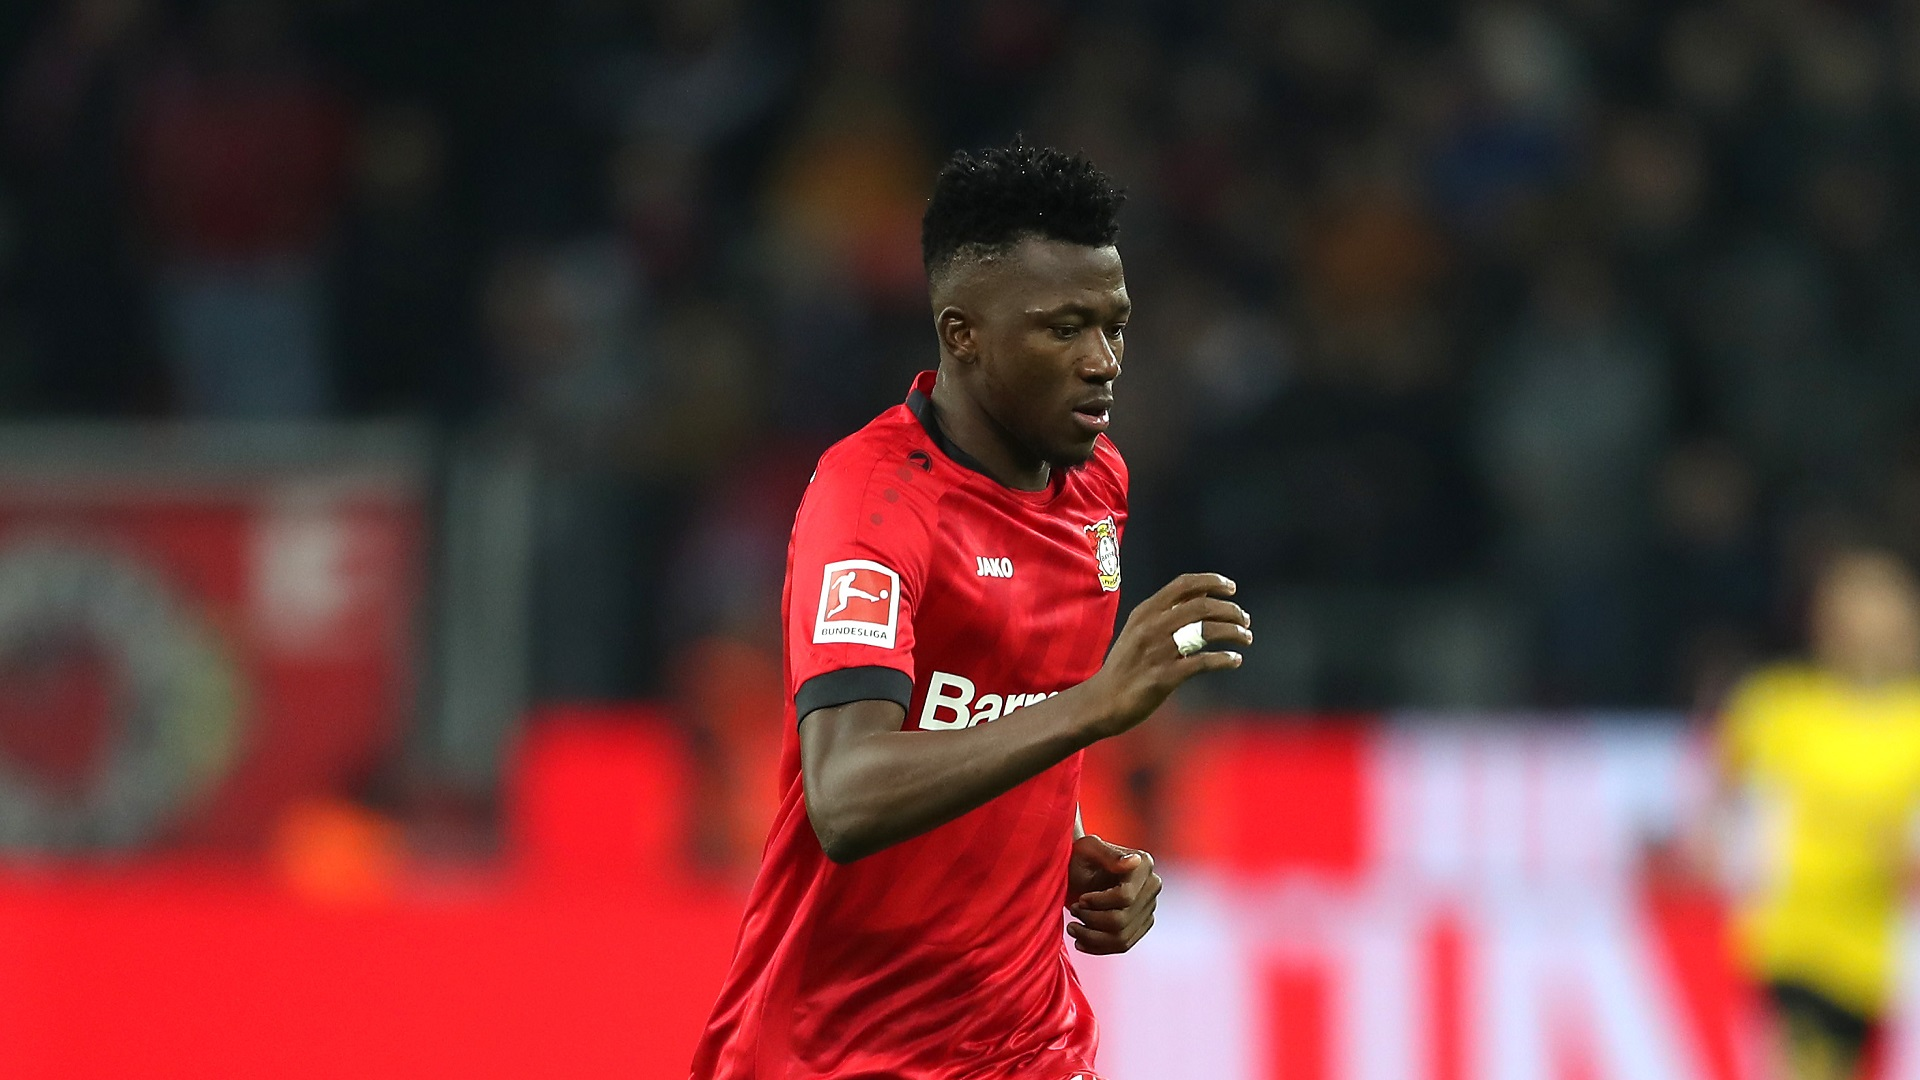 Burkinabe's Edmond Tapsoba outshines Ujah in DFB Pokal | Goal.com